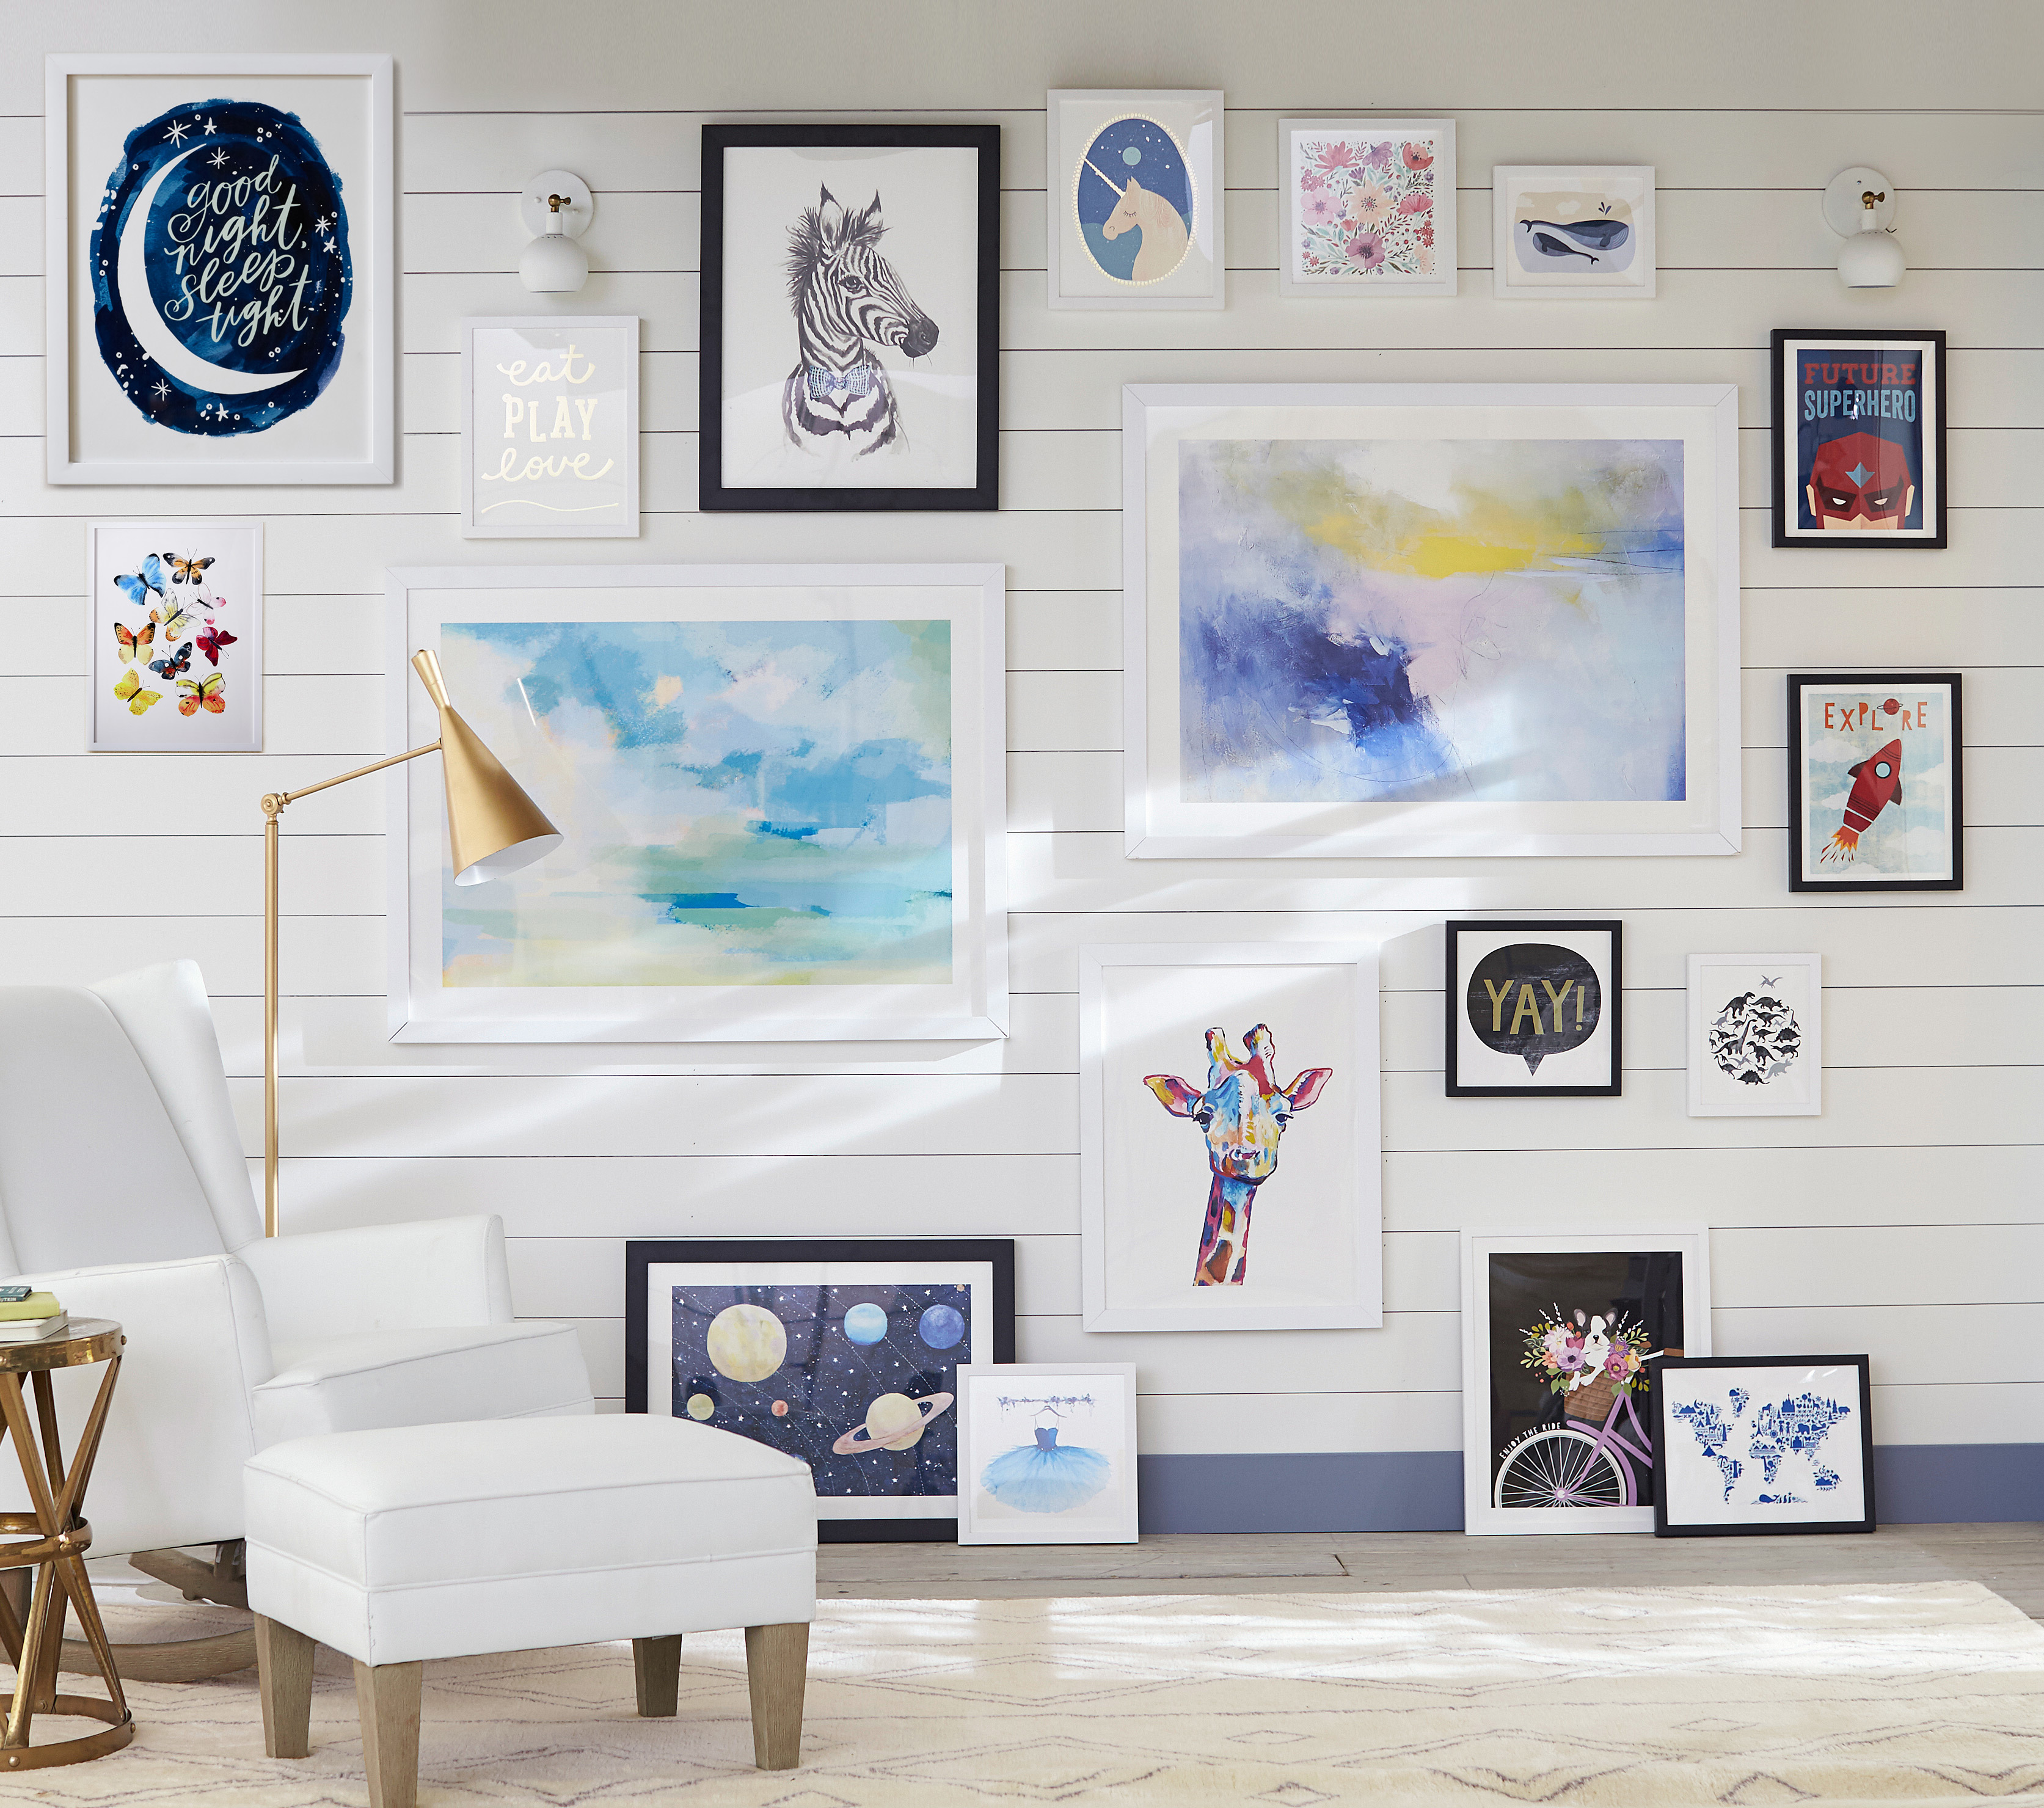 POTTERY BARN KIDS AND PBTEEN DEBUT EXCLUSIVE WALL ART COLLECTION BY MINTED  | Business Wire